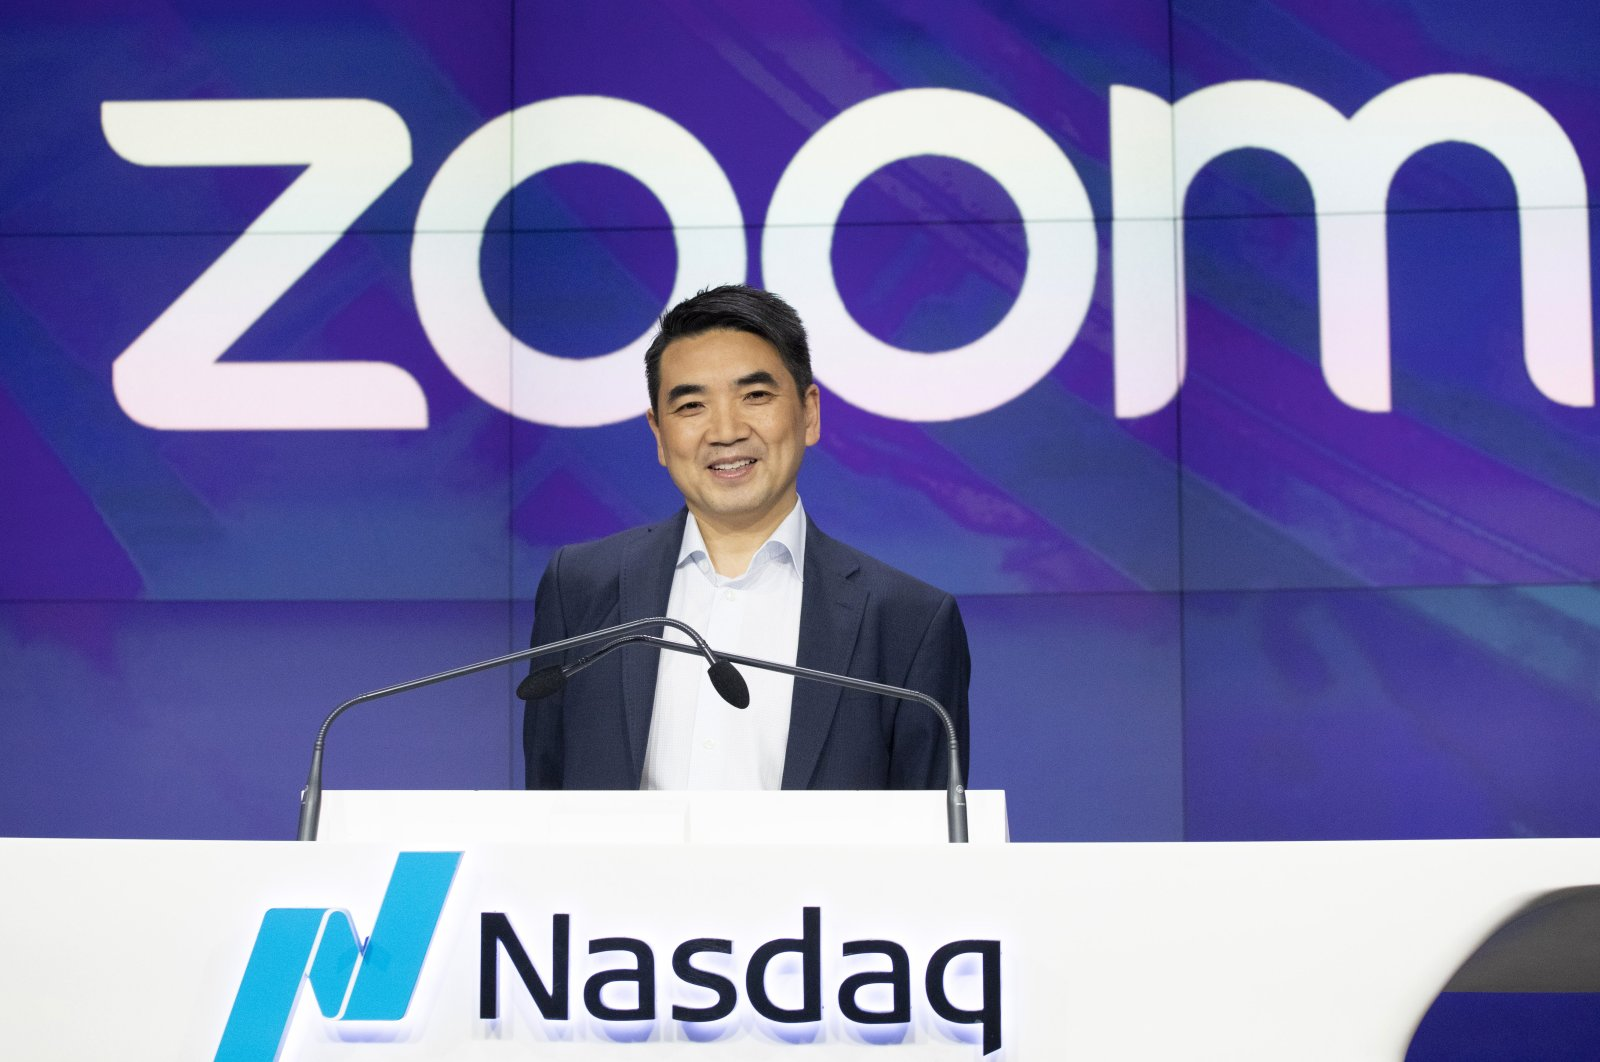 In this April 18, 2019 file photo, Zoom CEO Eric Yuan attends the opening bell at Nasdaq as his company holds its IPO in New York. (AP Photo)